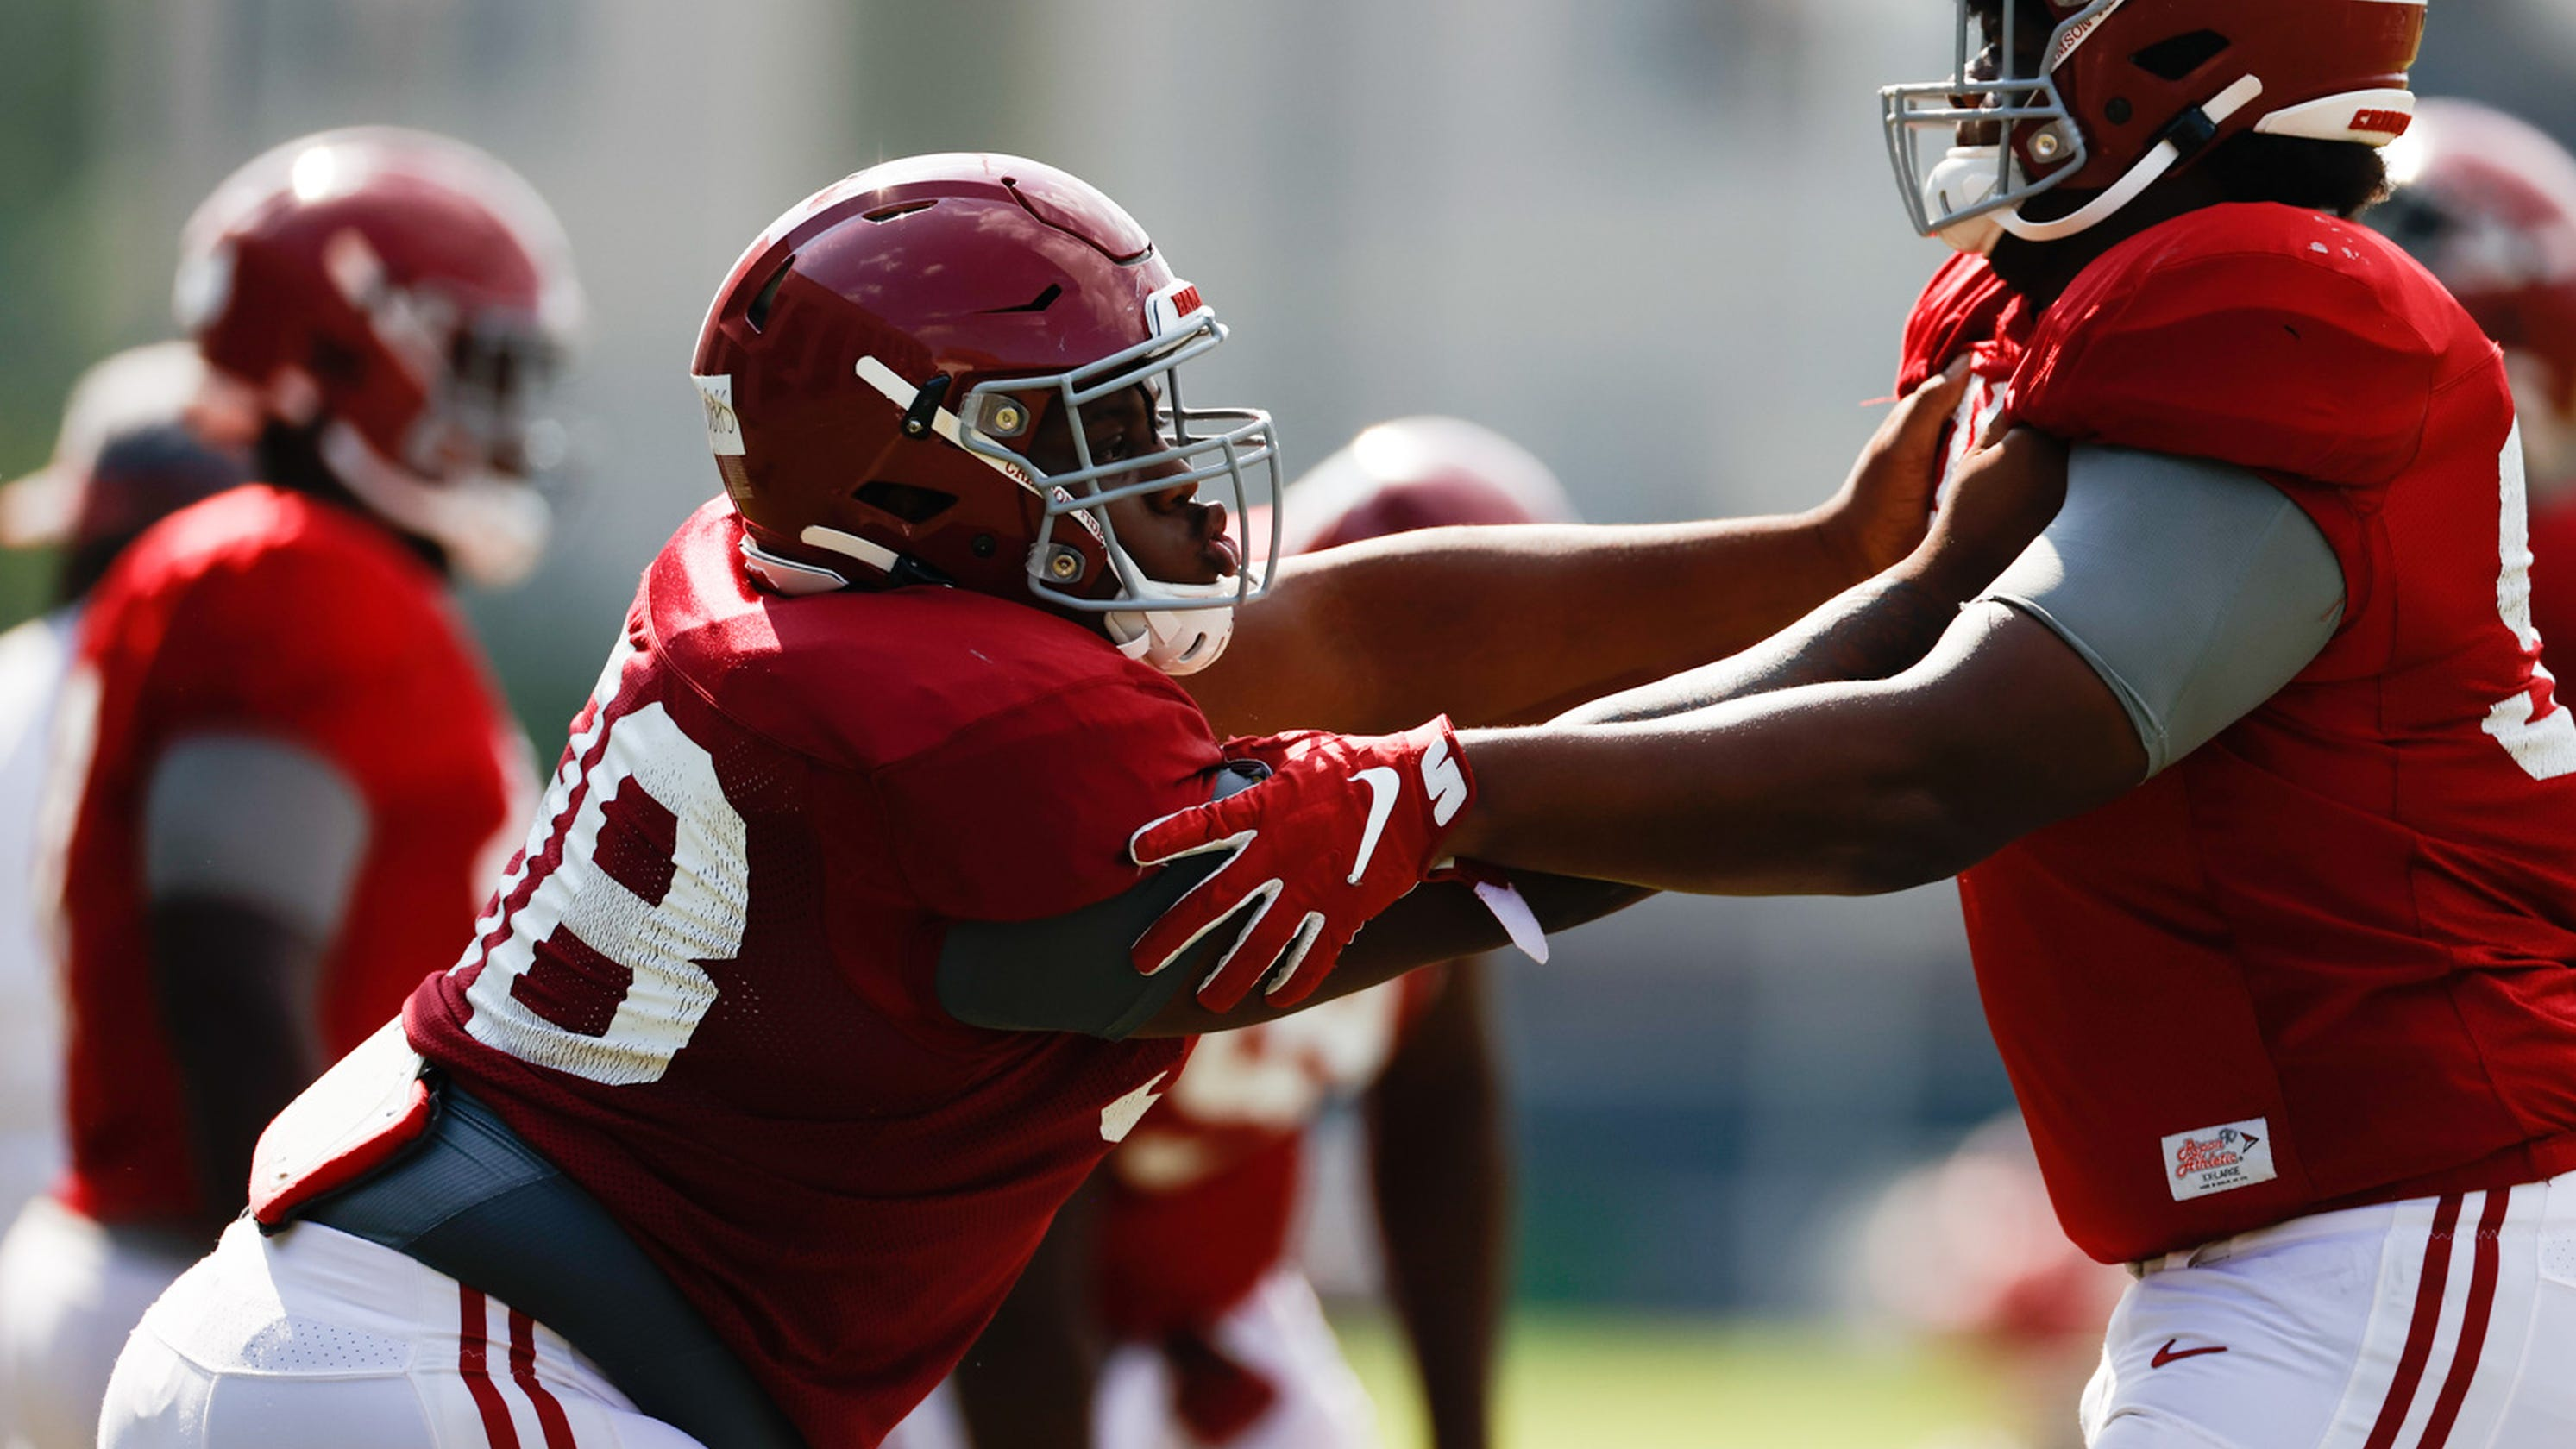 Alabama football: Jamil Burroughs steps into bigger role on defensive line in Ray's absence